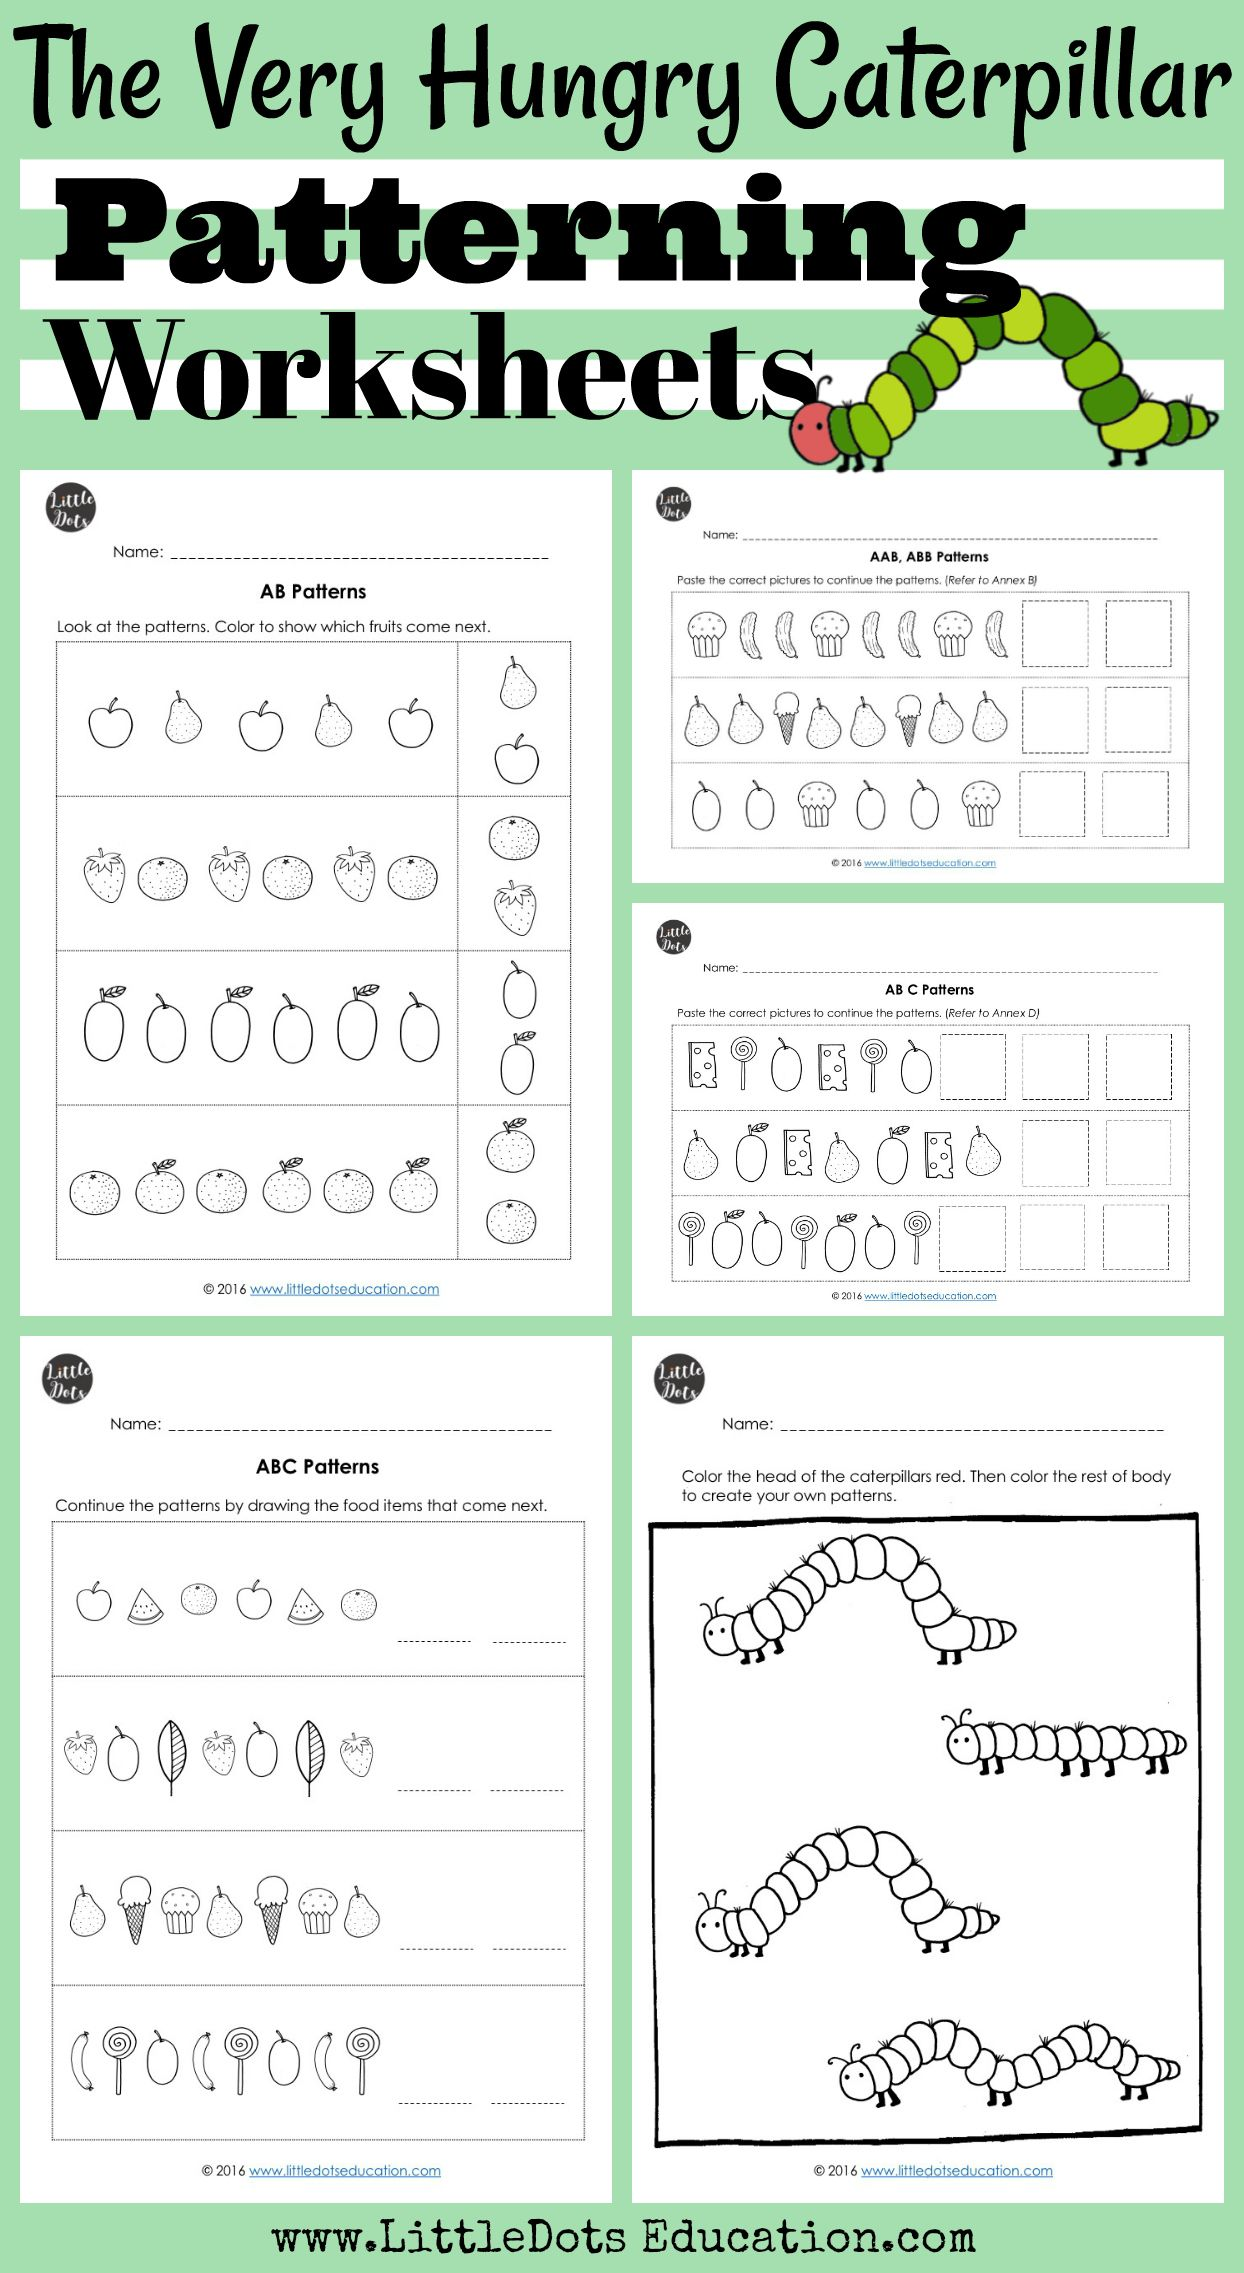 The Very Hungry Caterpillar Theme Patterning Worksheets